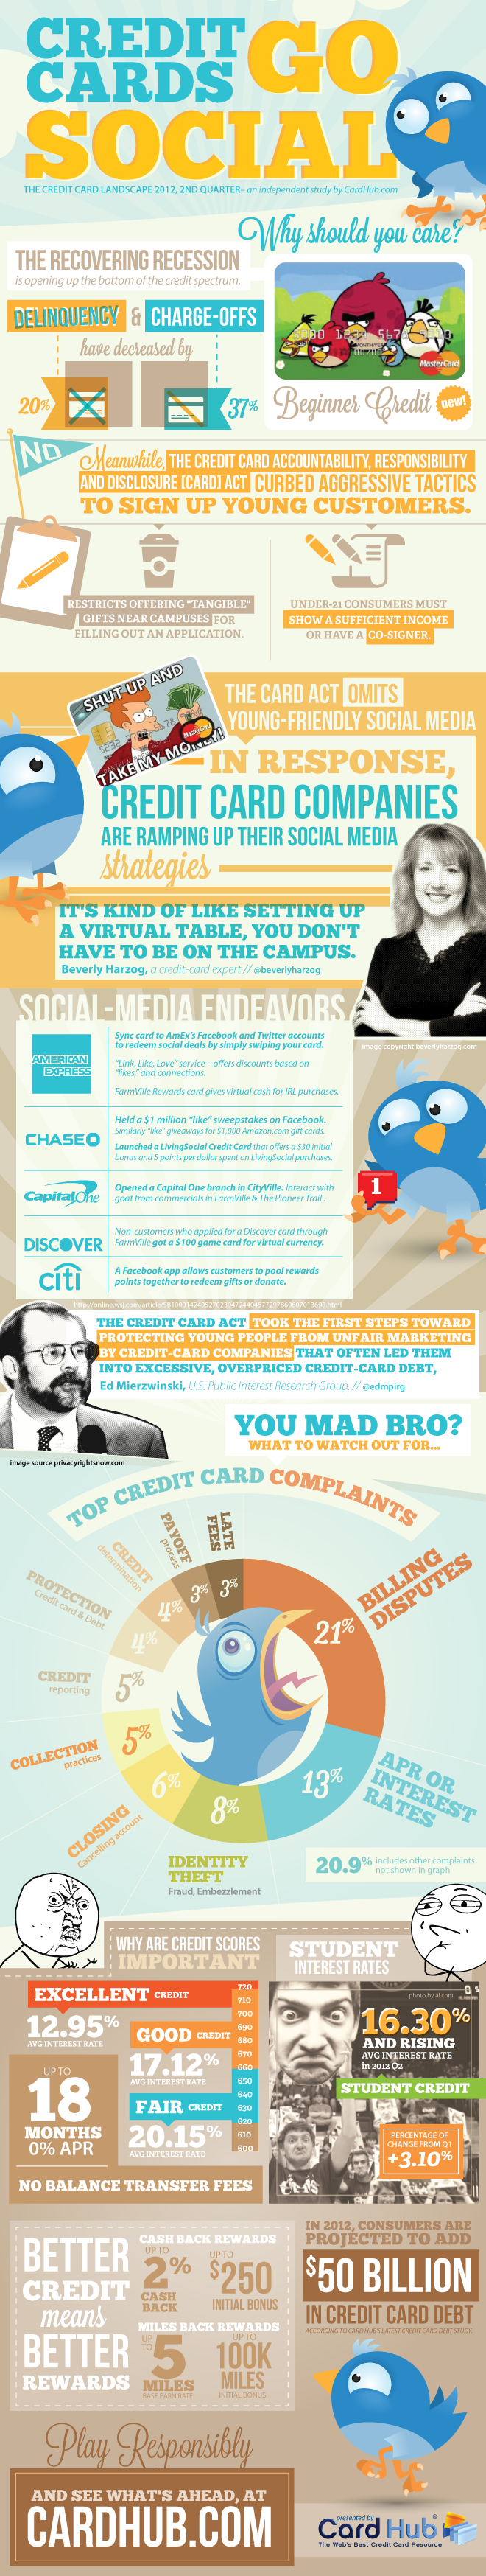 Credit-Cards-and-Social-Media-Marketing